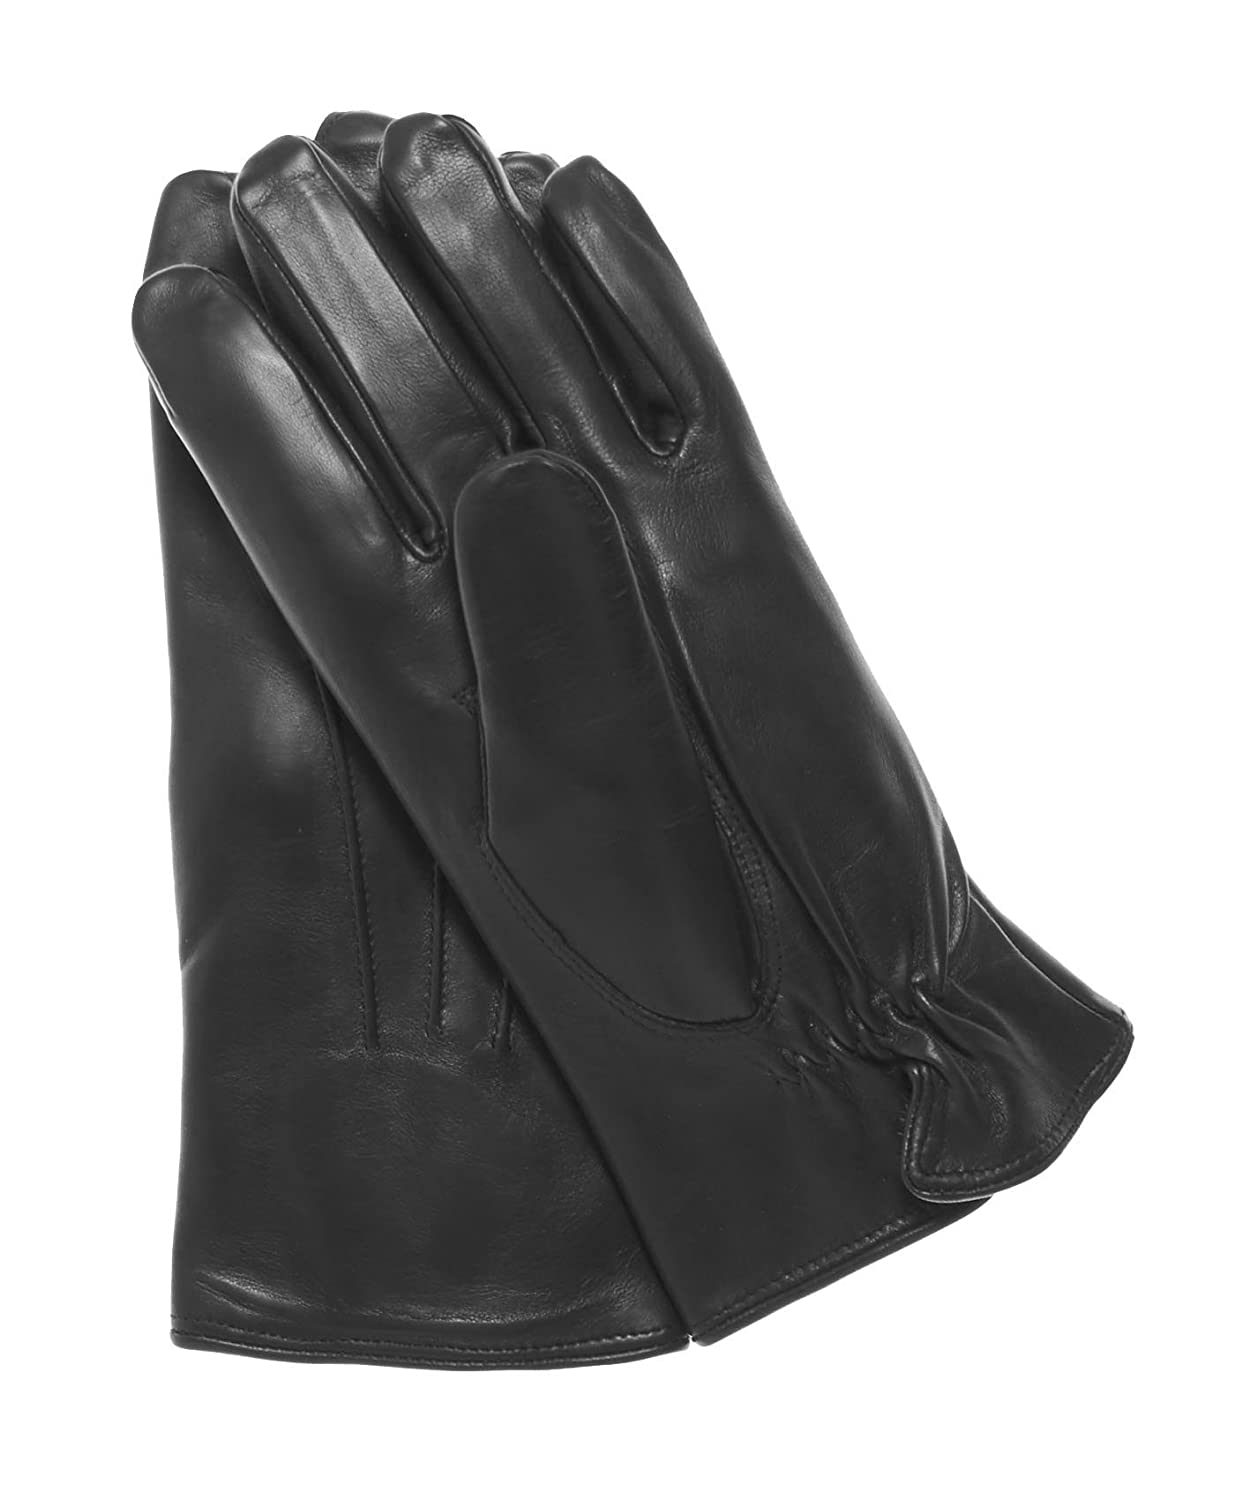 Mens leather gloves rabbit fur lined - Fratelli Orsini Everyday Men S Our Bestselling Italian Rabbit Fur Gloves Size Xs Color Black At Amazon Men S Clothing Store